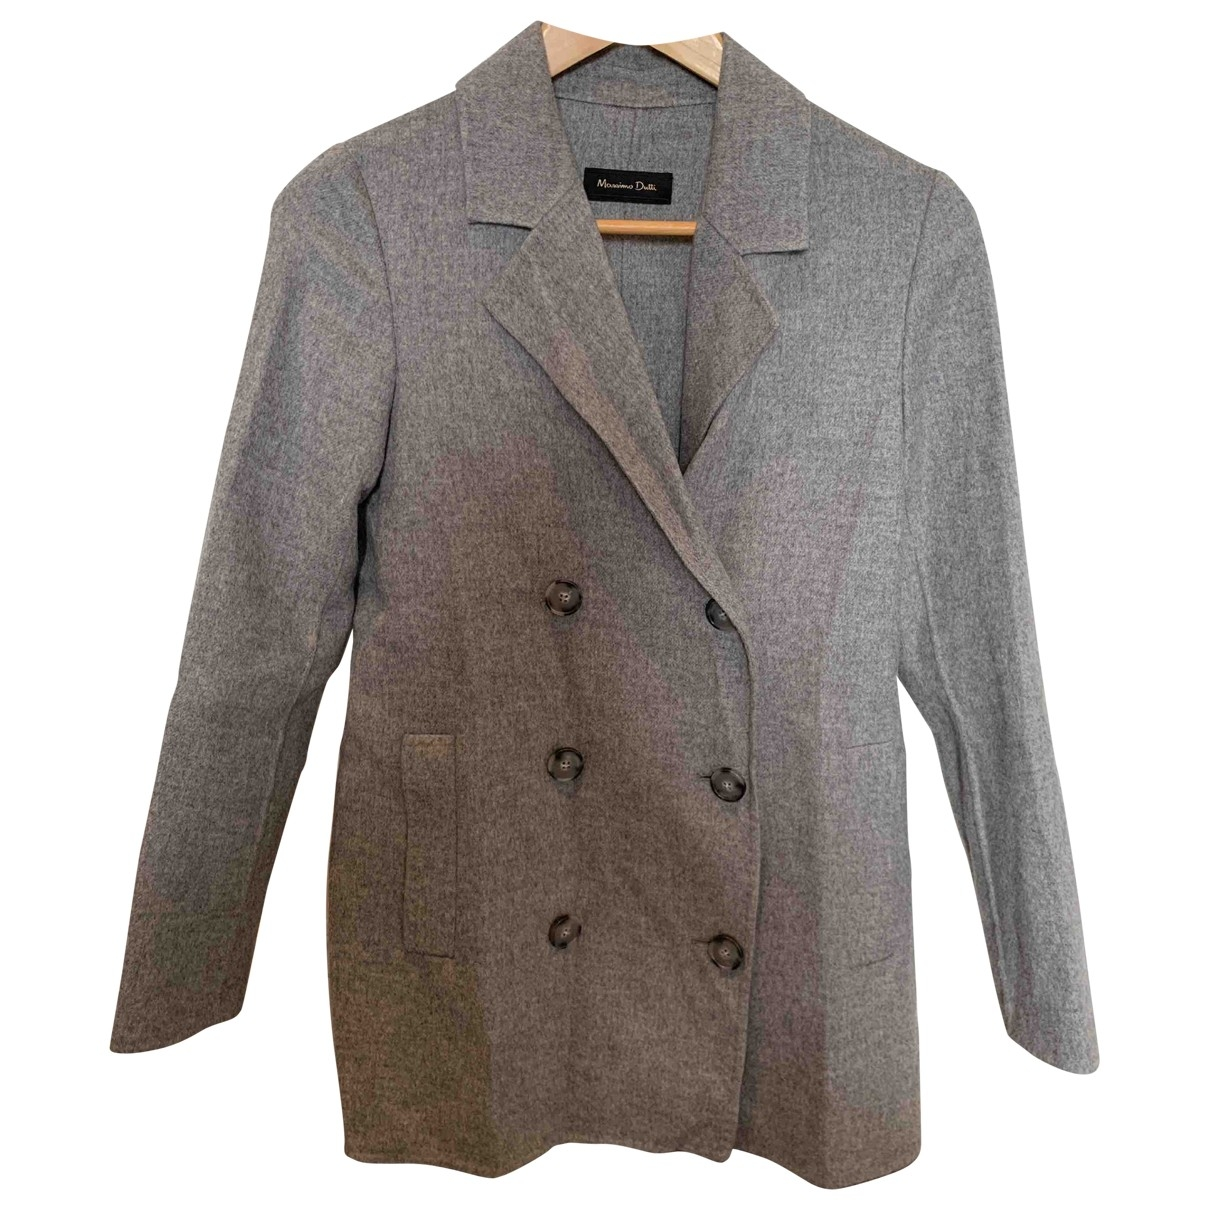 Massimo Dutti \N Grey Wool coat for Women 36 FR